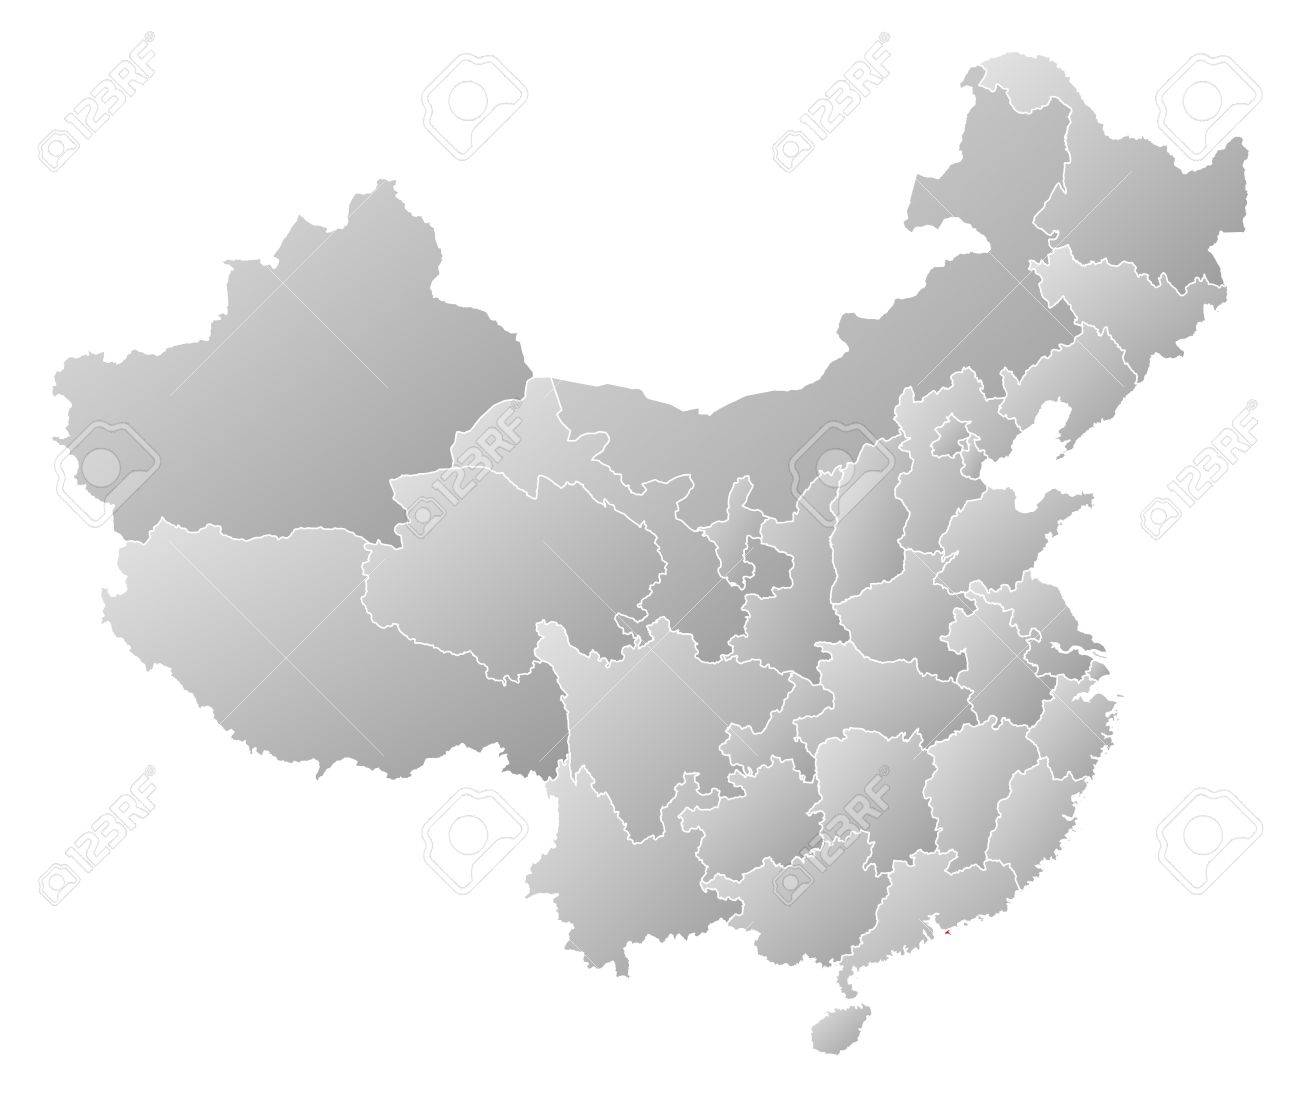 Political Map Of China With The Several Provinces Where Hong